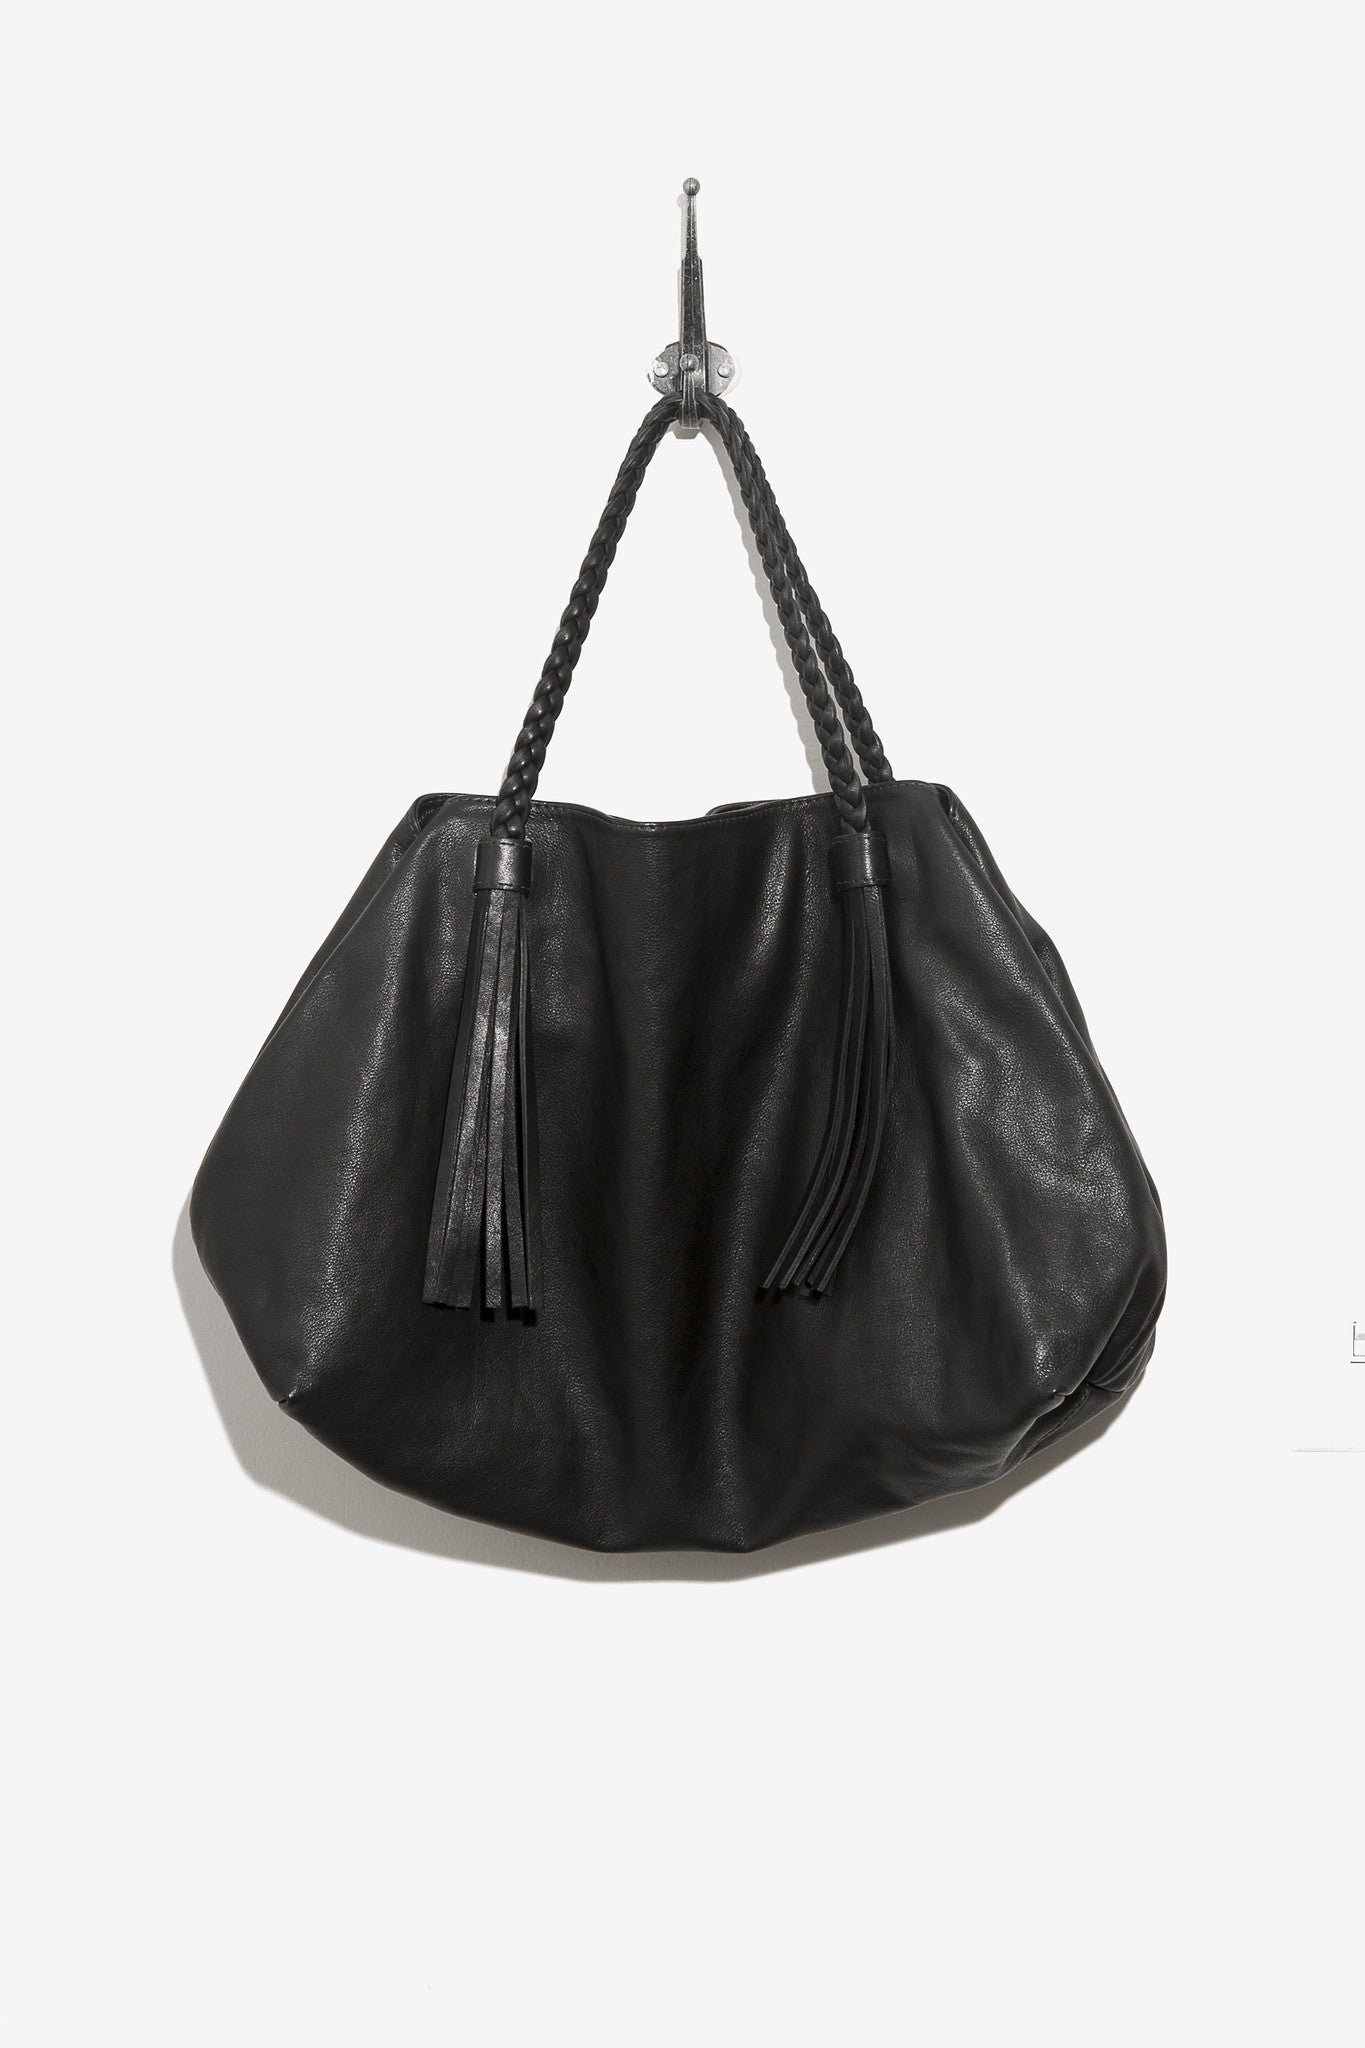 Tote Bag is a black tote with braided straps and tassel features designed by Moses Nadel.